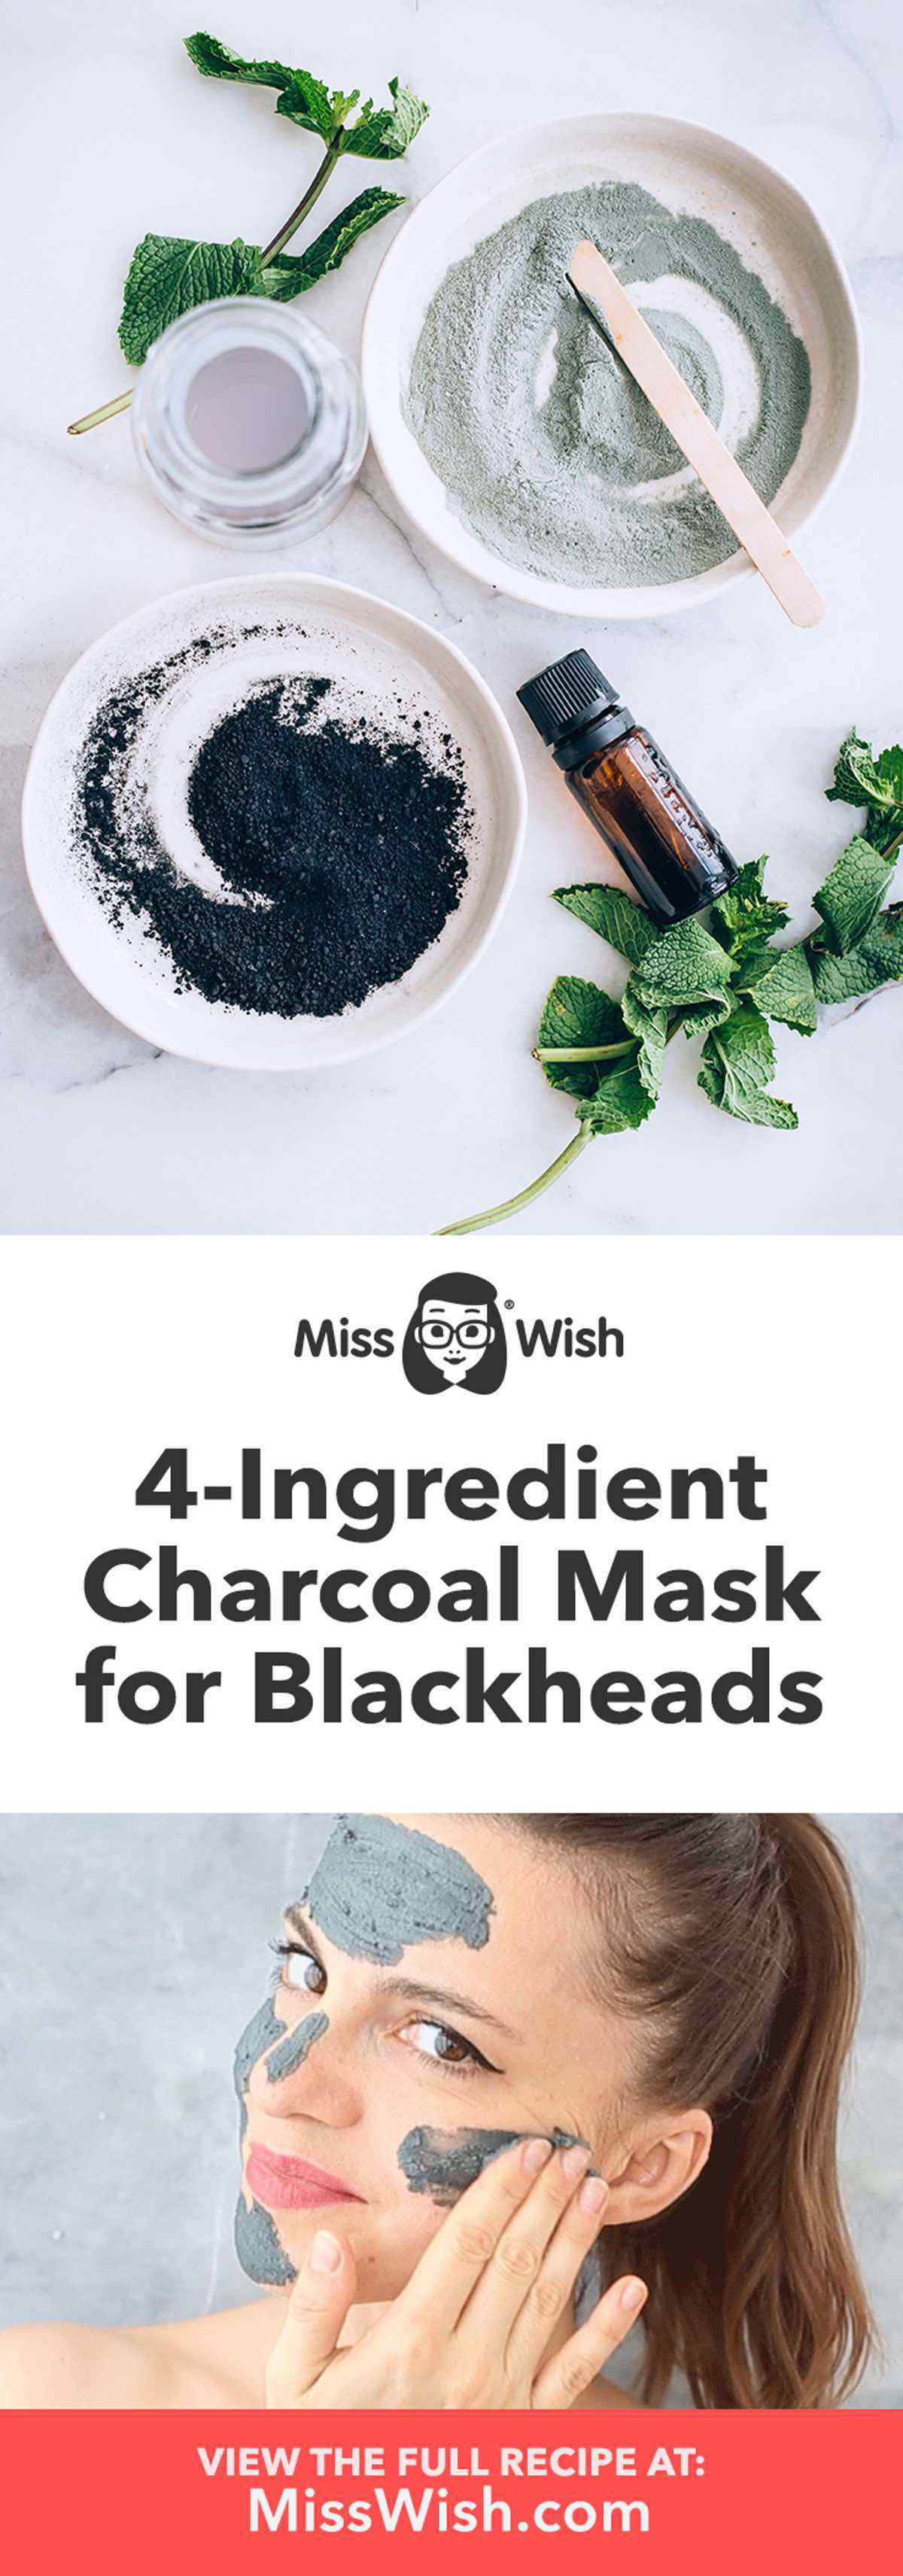 4-Ingredient Charcoal Mask for Blackheads